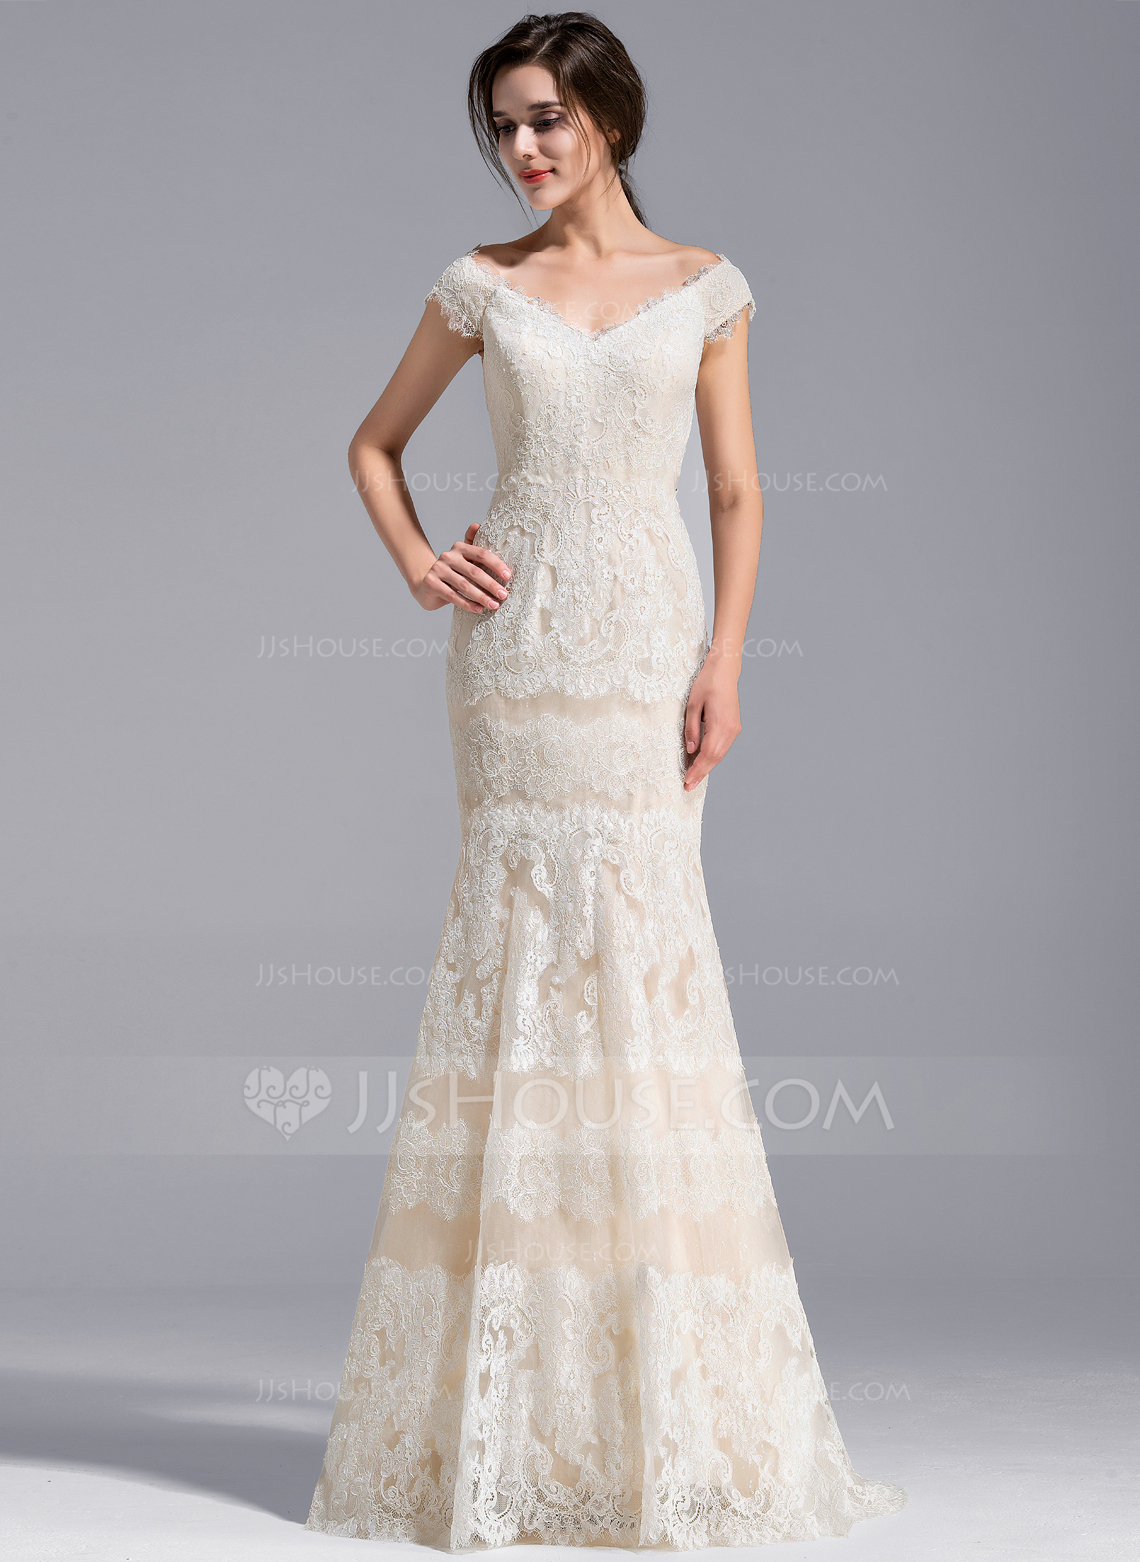 Trumpet Mermaid Off The Shoulder Sweep Train Lace Wedding Dress g jjs house wedding dresses Home Wedding Dresses Loading zoom